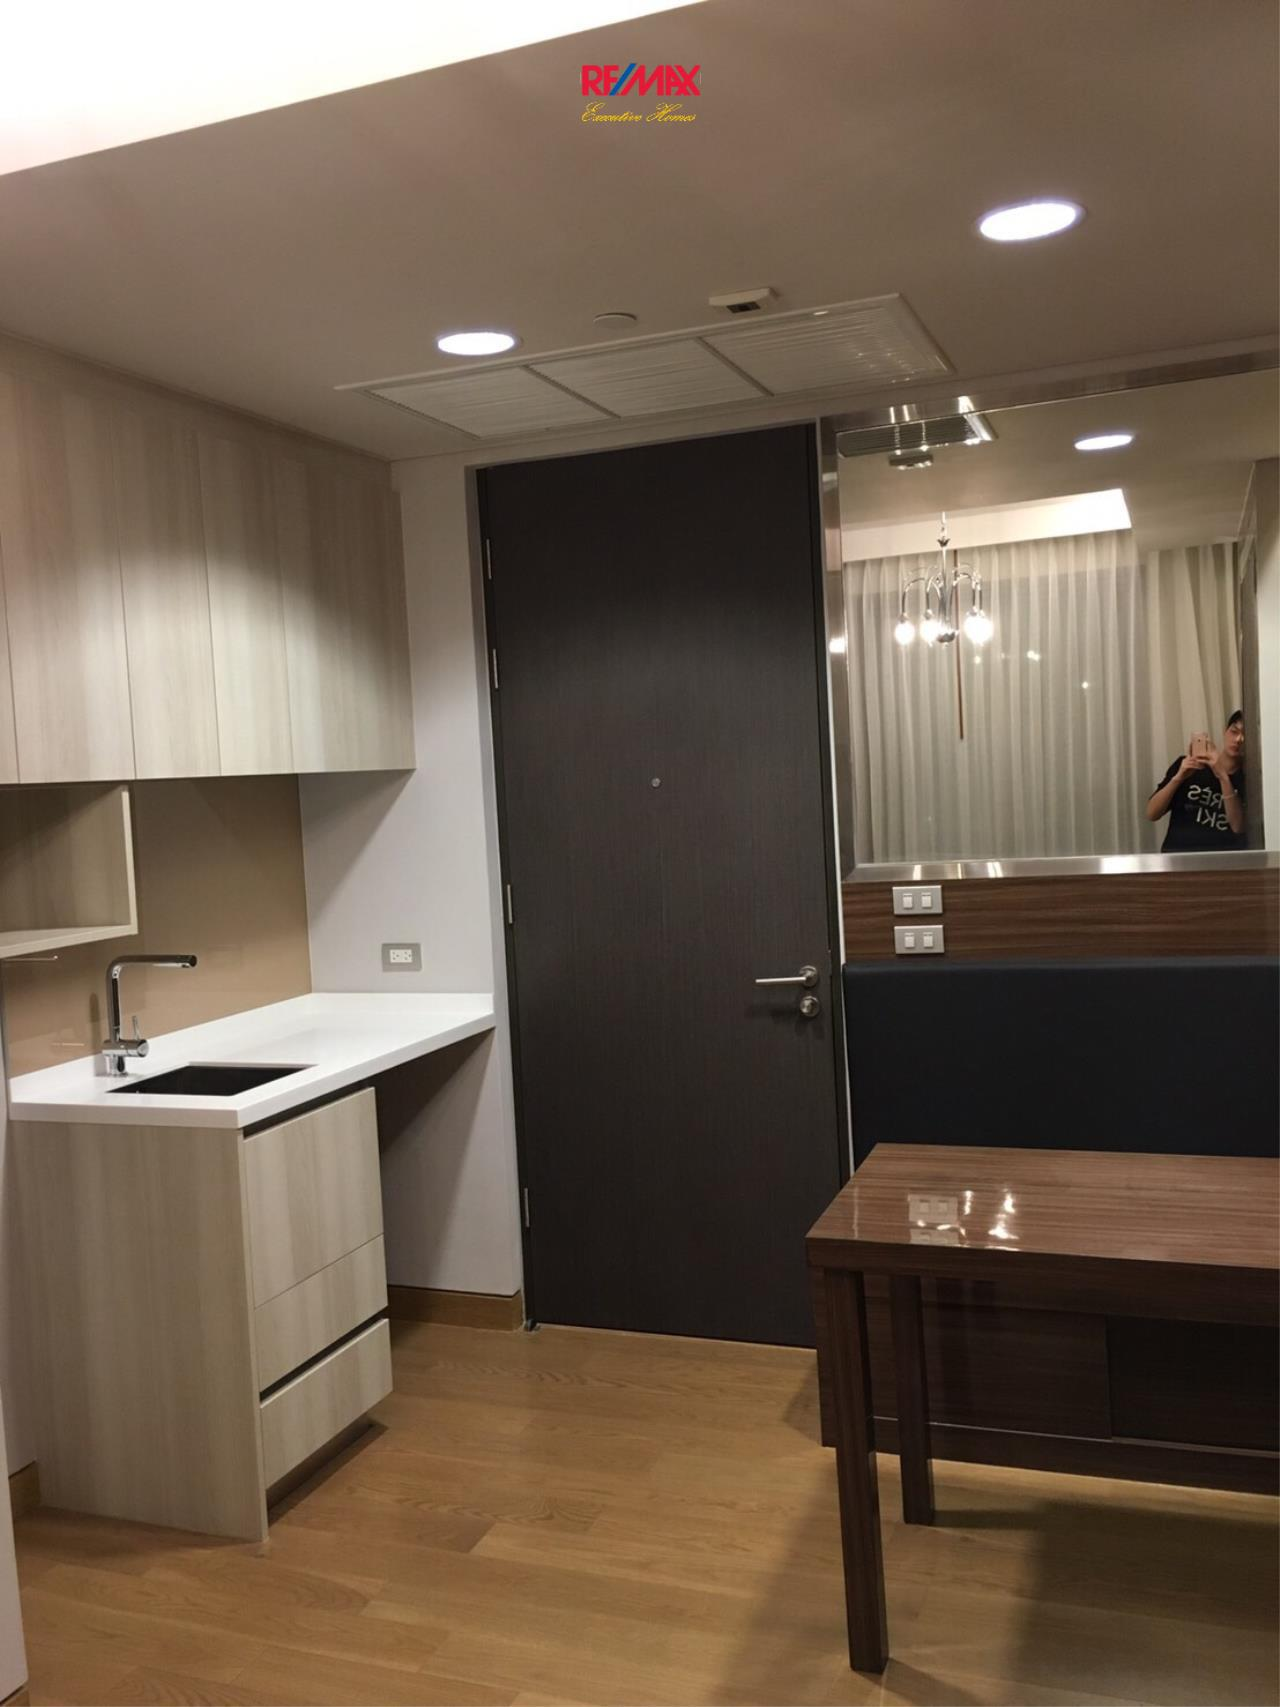 RE/MAX Executive Homes Agency's Nice 1 Bedroom for Sale Lumpini 24 7